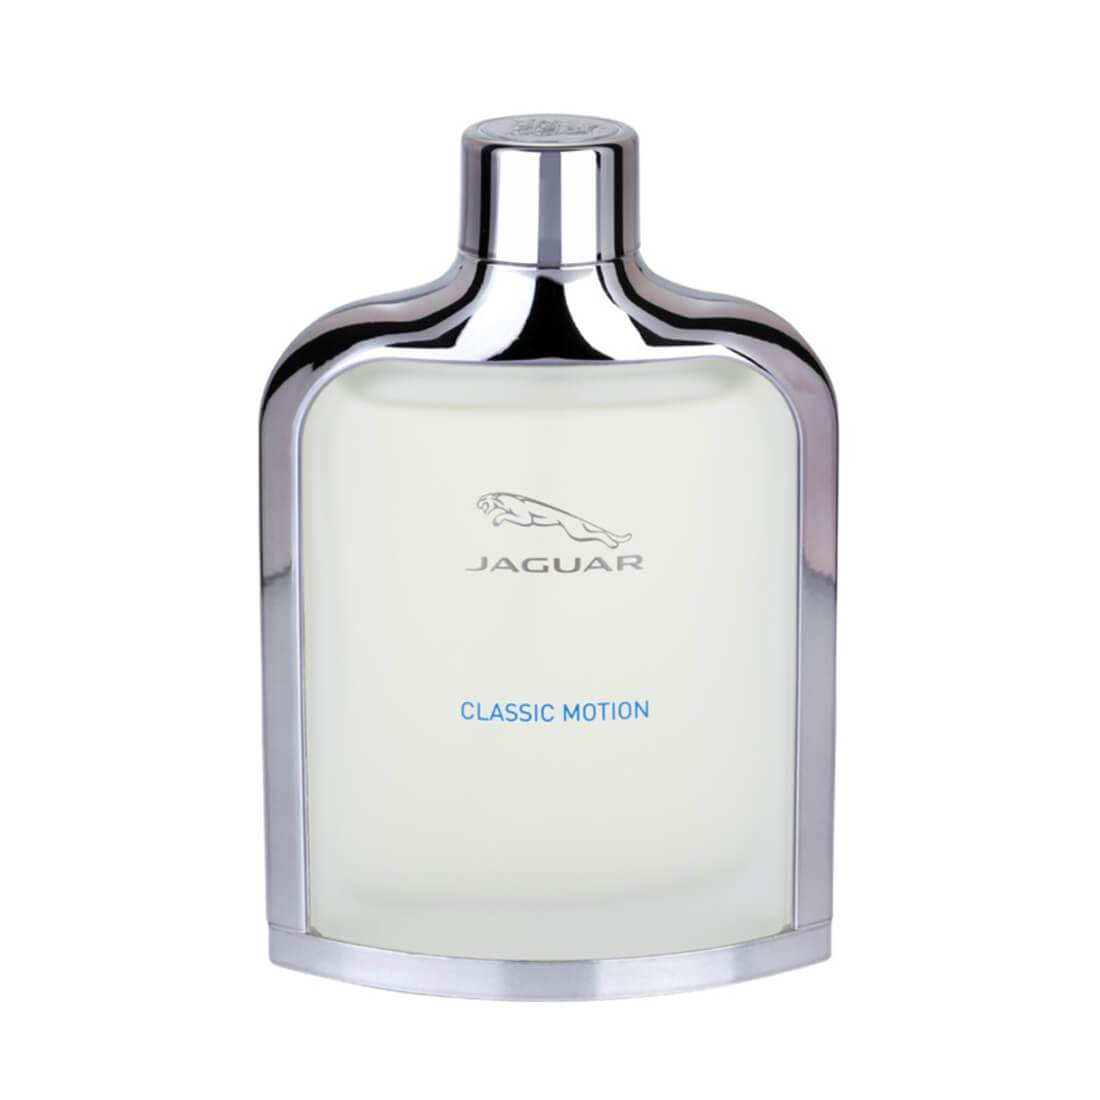 Jaguar Classic Motion EDT Perfume For Men - 100ml